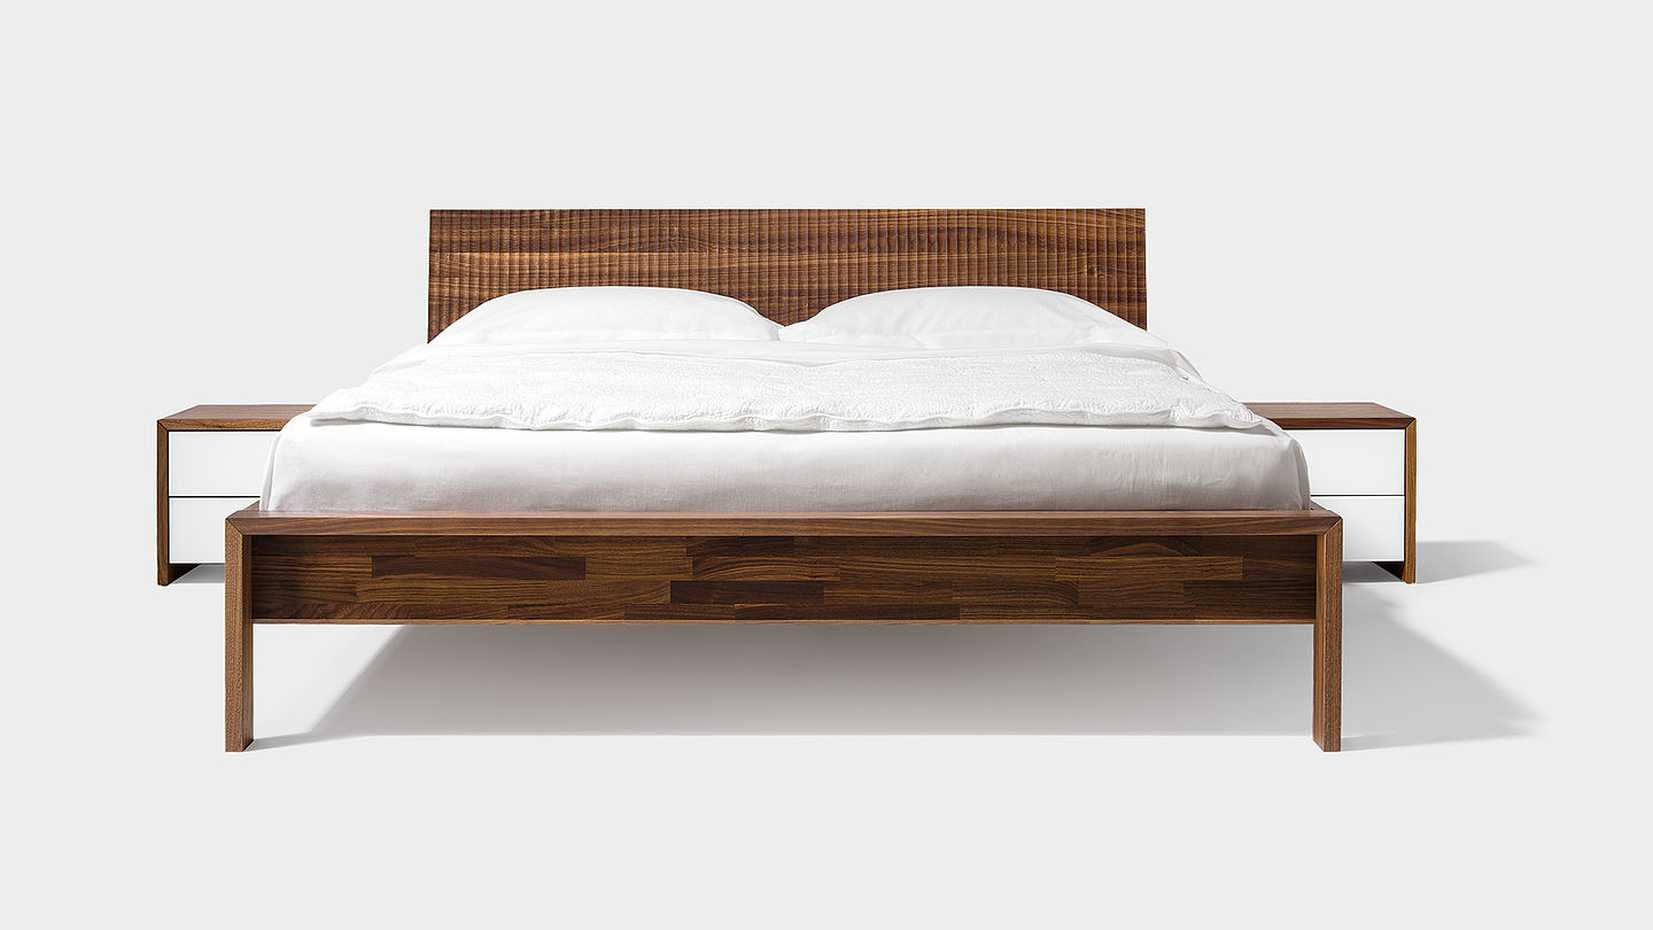 Lunetto Bed by Team 7 product image 2